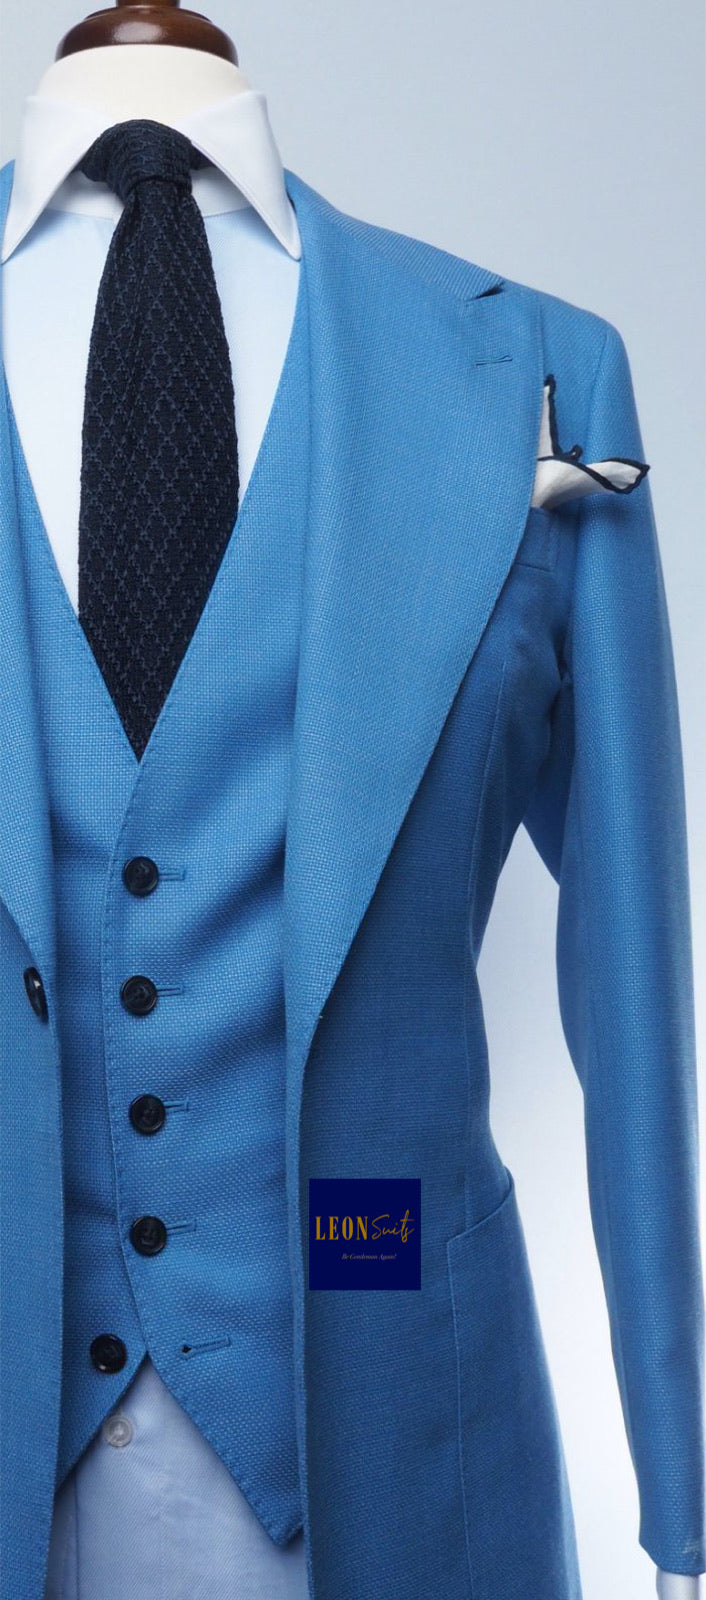 Premium Bespoke Light Blue 3-Piece Suit